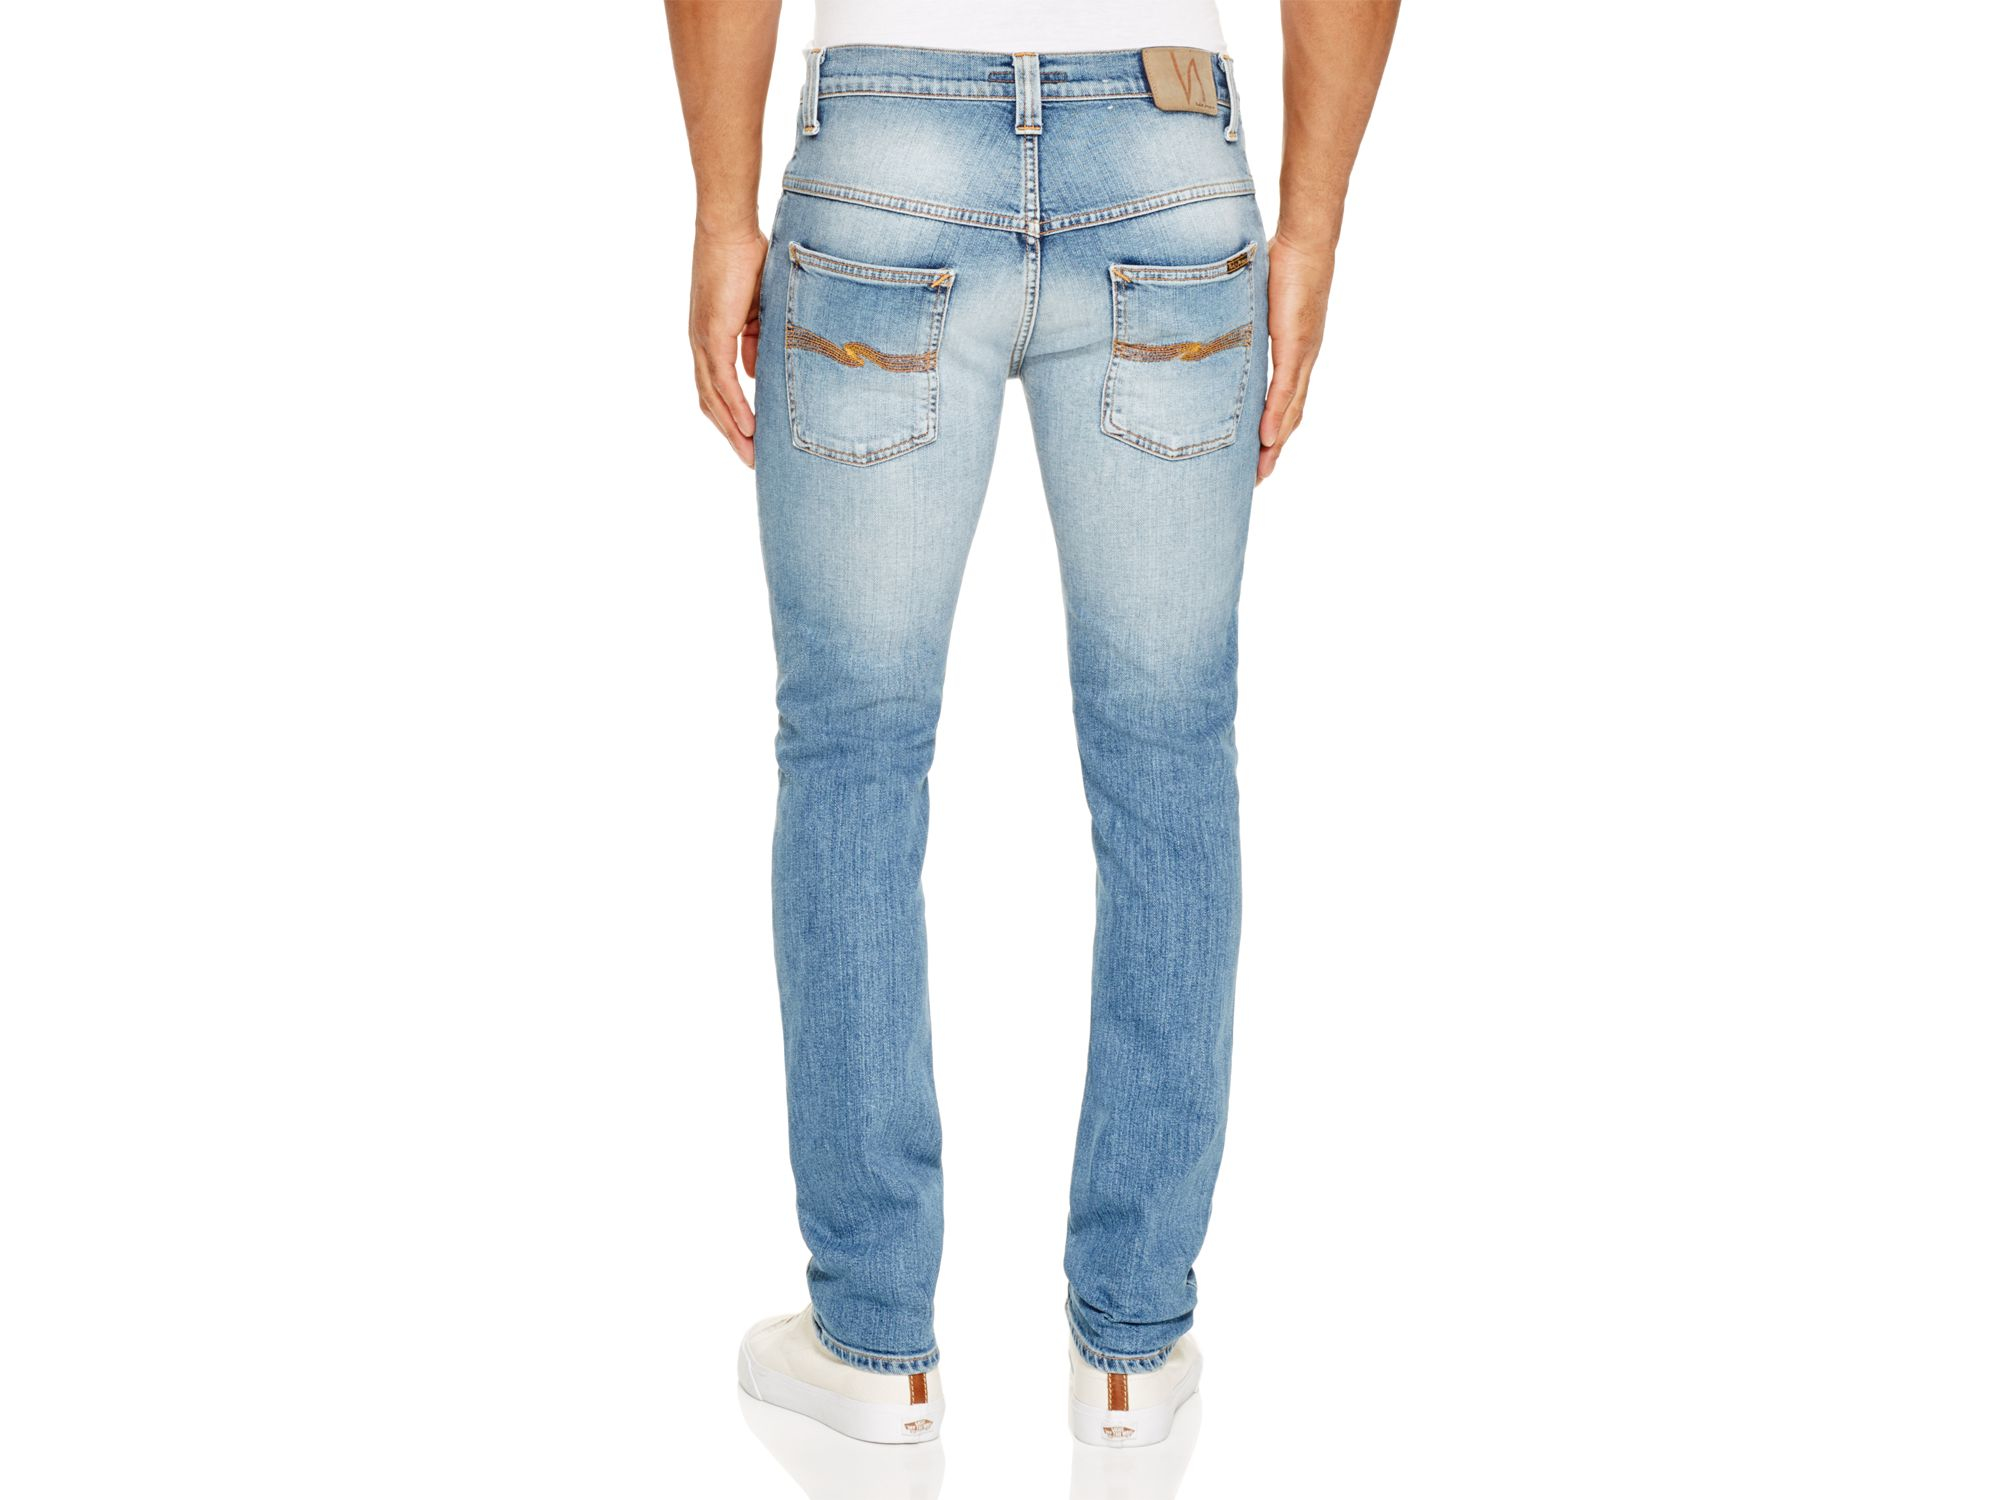 Nudie Jeans Denim Thin Finn Slim Fit Jeans In Indigo Shuffle in Blue for Men